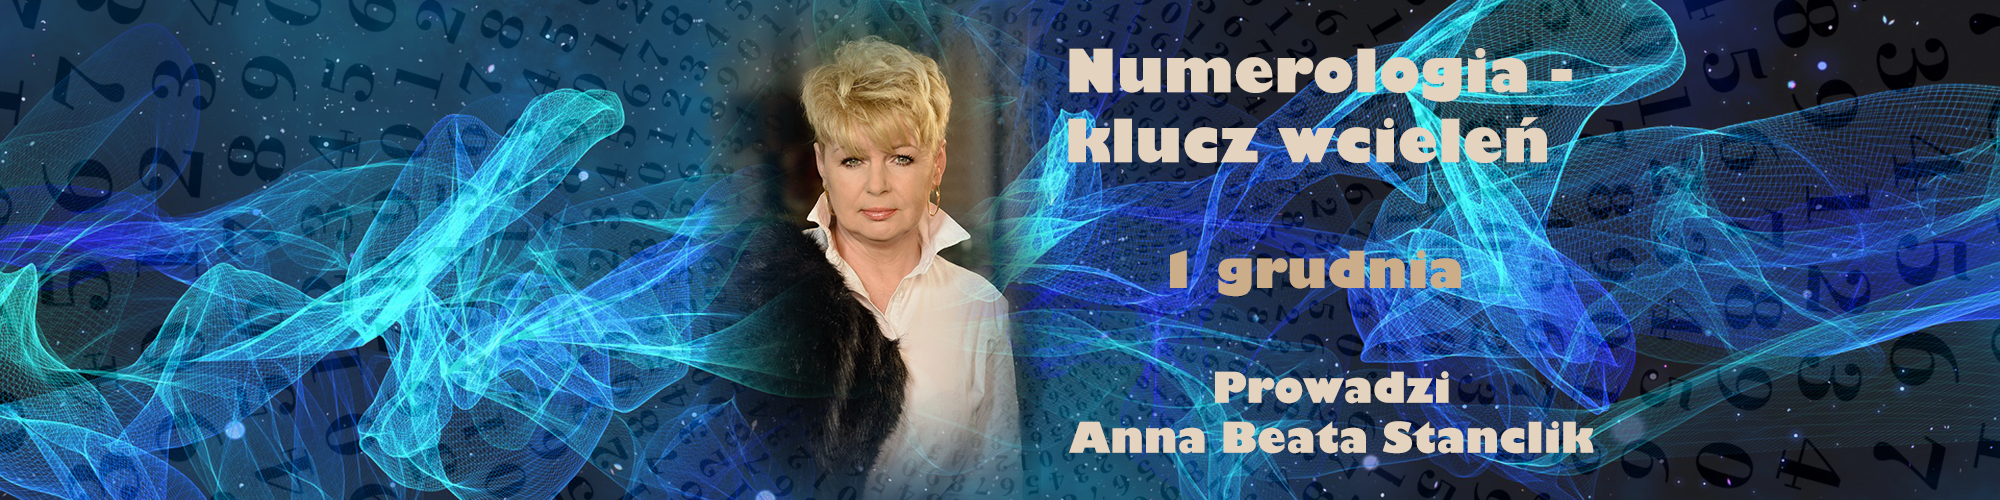 numerologia1-banner